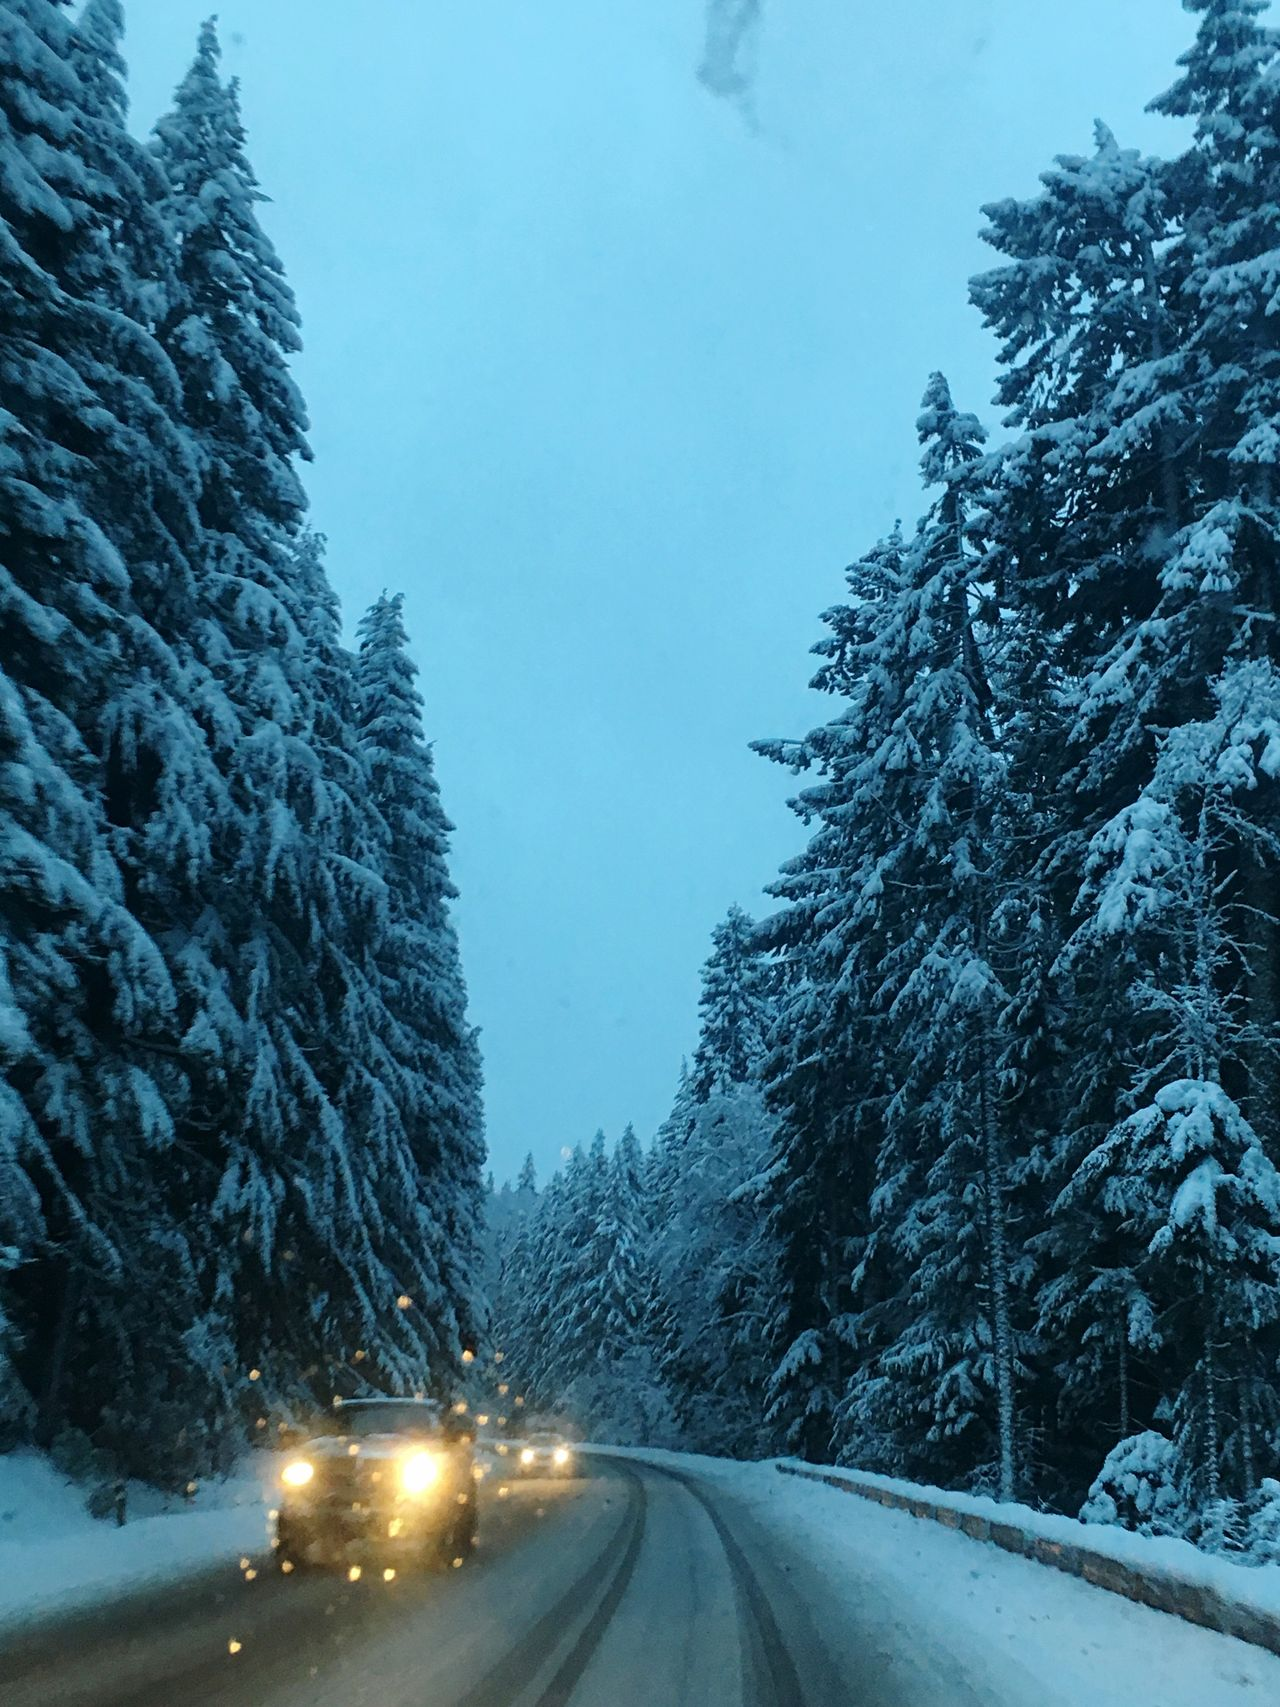 Traveling Home For The Holidays Transportation Tree Road Car Cold Temperature Snow Winter Weather Land Vehicle Nature Mode Of Transport No People Beauty In Nature Scenics Outdoors Day Sky